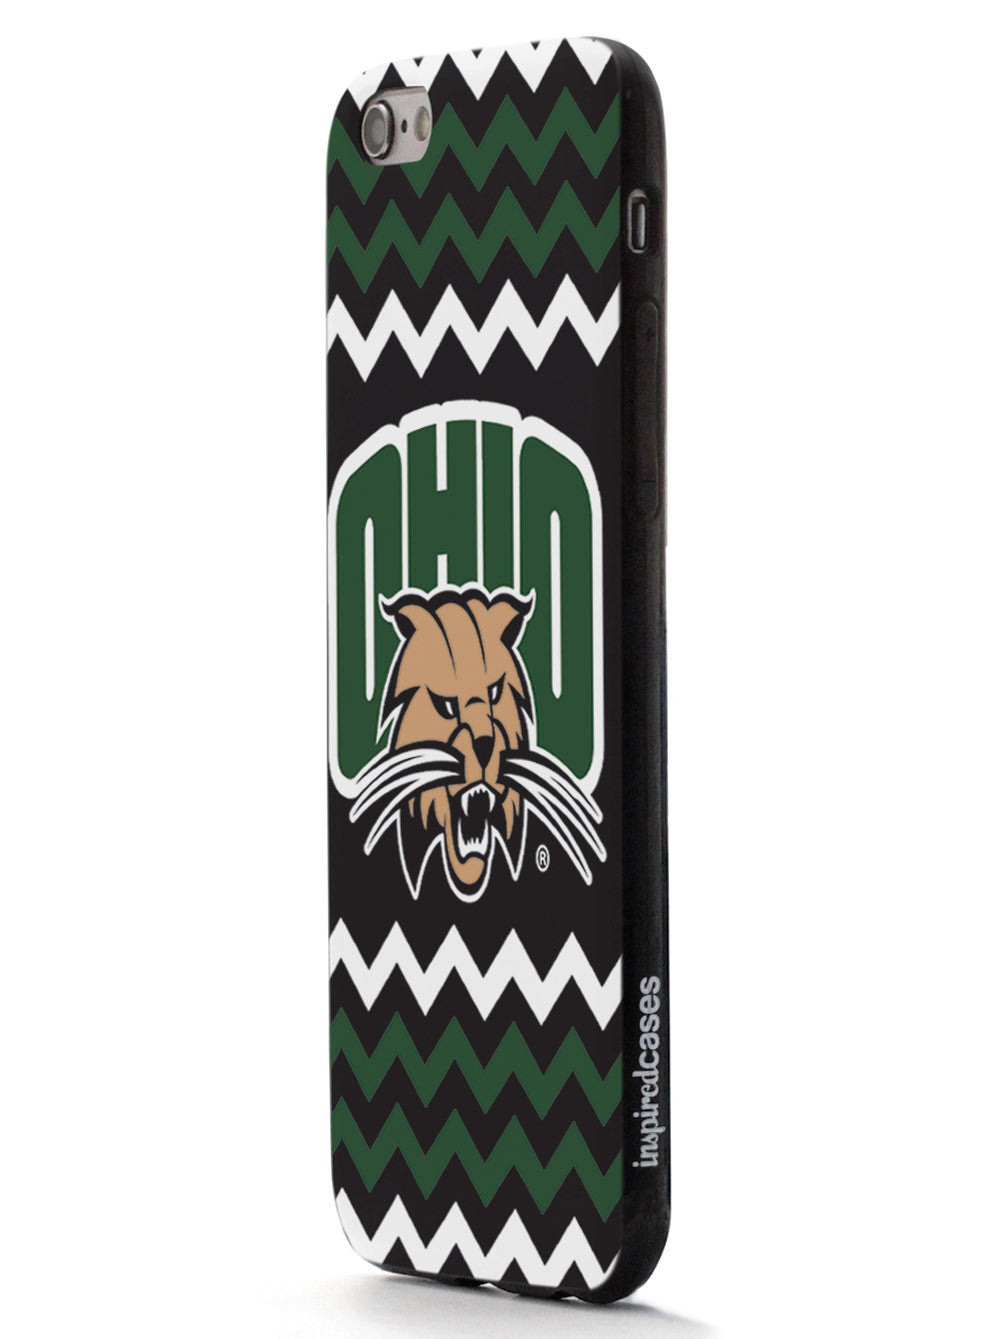 Ohio University Bobcats - Chevron Case